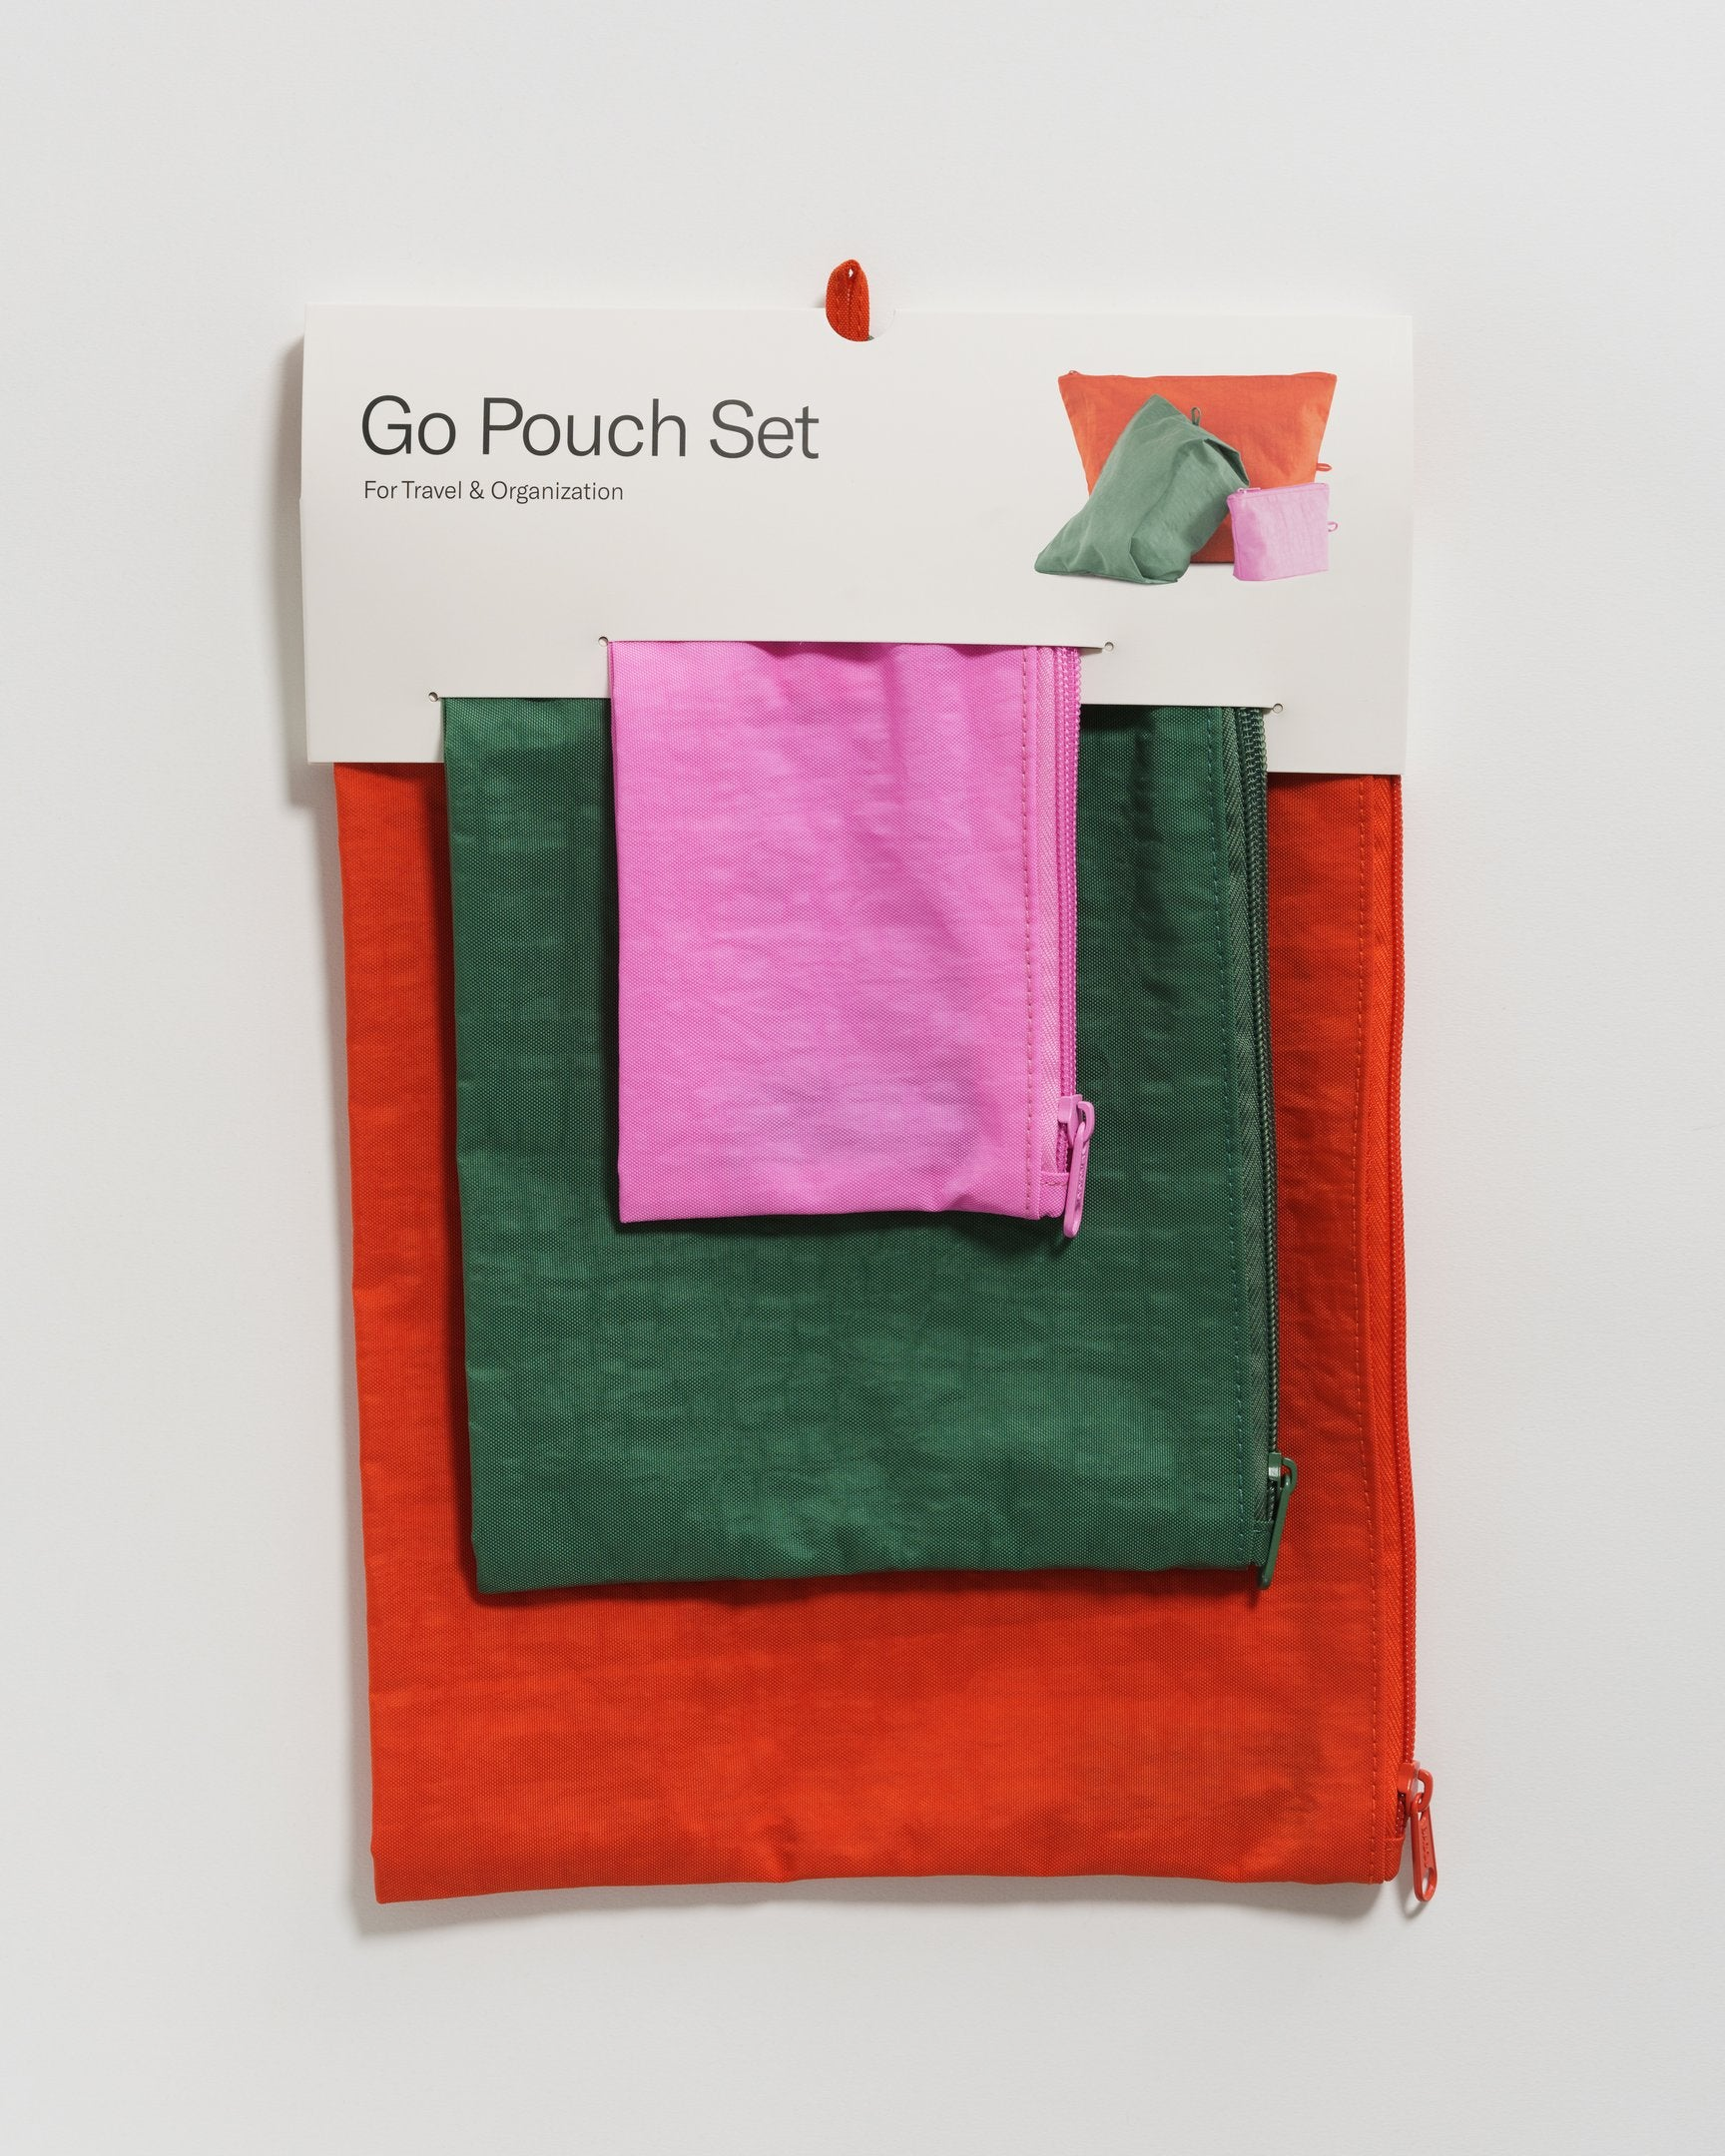 Go Pouch Set (Venice Beach)